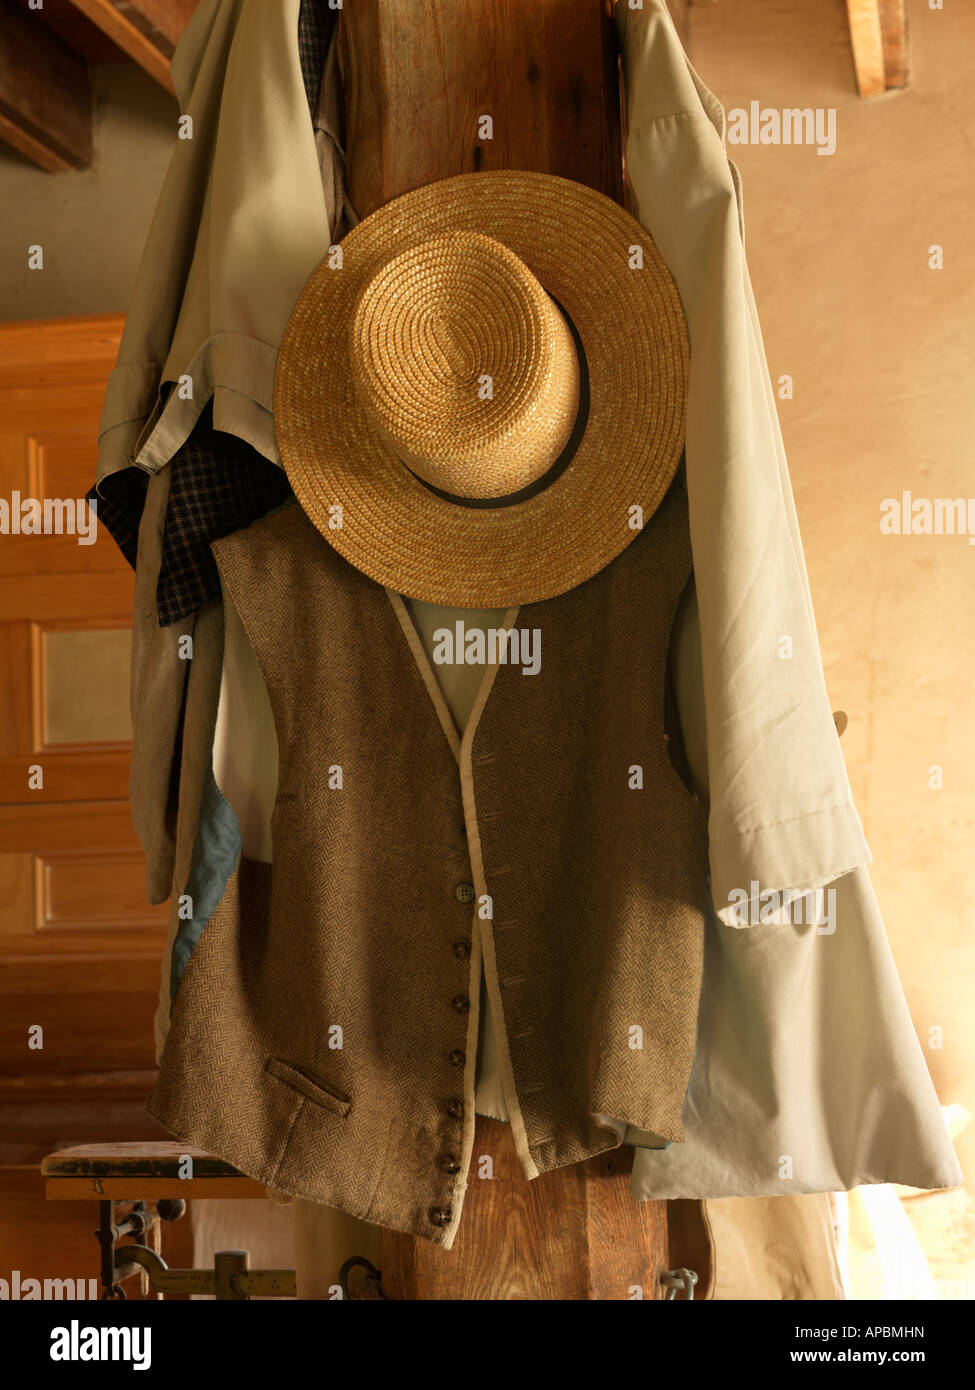 b58a3110a10 Canada Ontario Morrisburg Upper Canada Village antique straw hat and vest  hanging on a wooden post